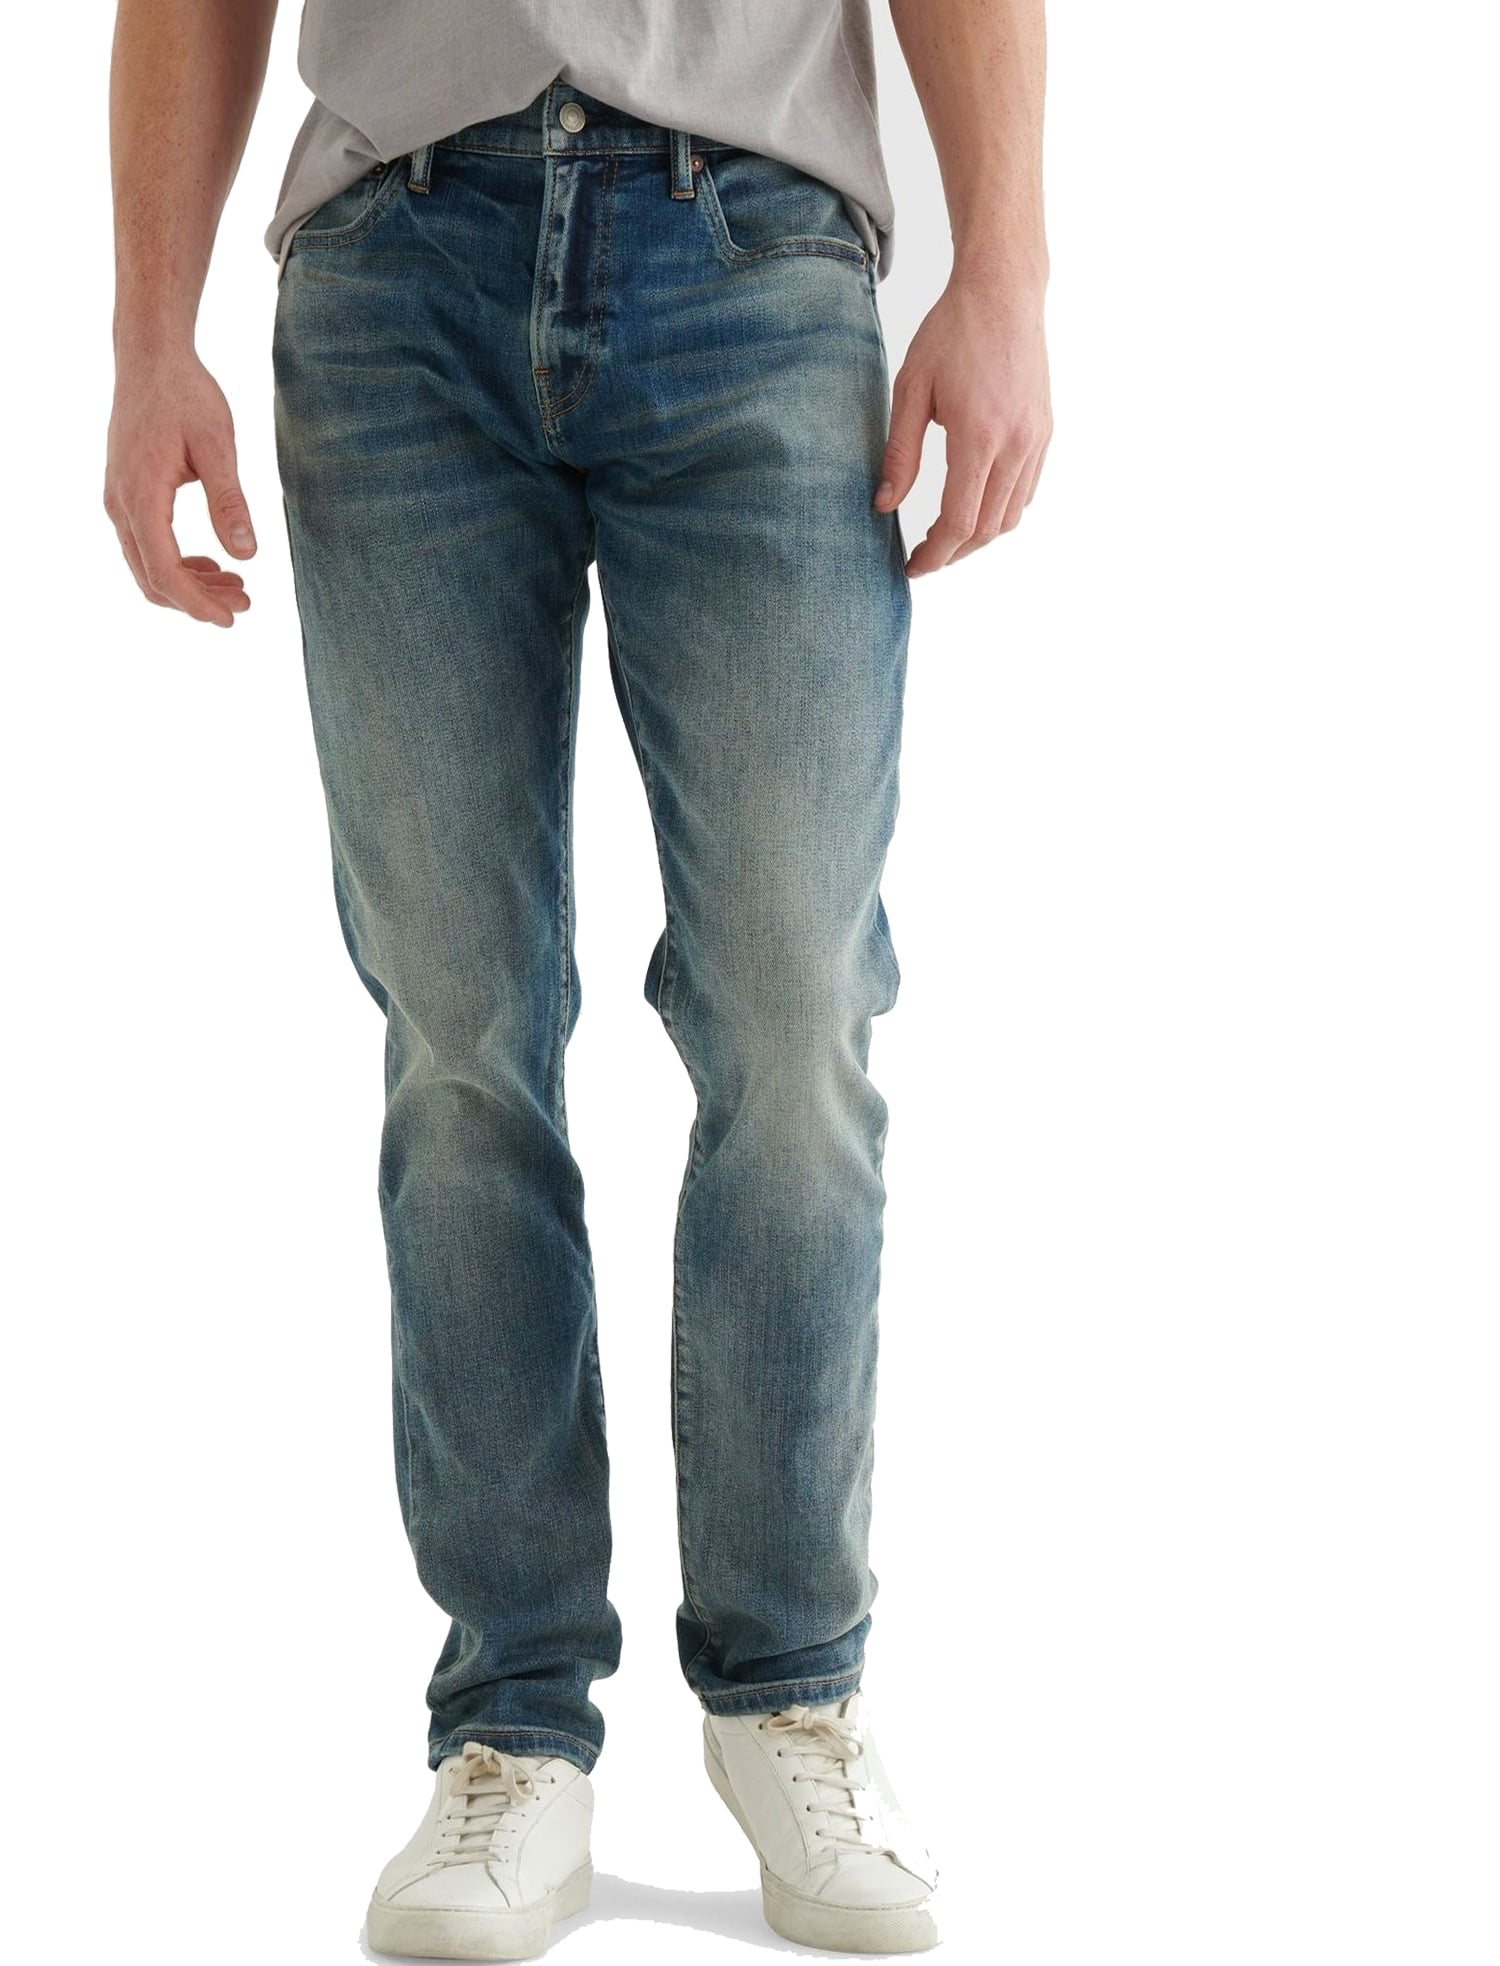 Lucky Brand: Men's Jeans (110 Slim or 223 Straight 4-Way Stretch) $40 + 40% Off Select Shorts & Tees + Free S/H